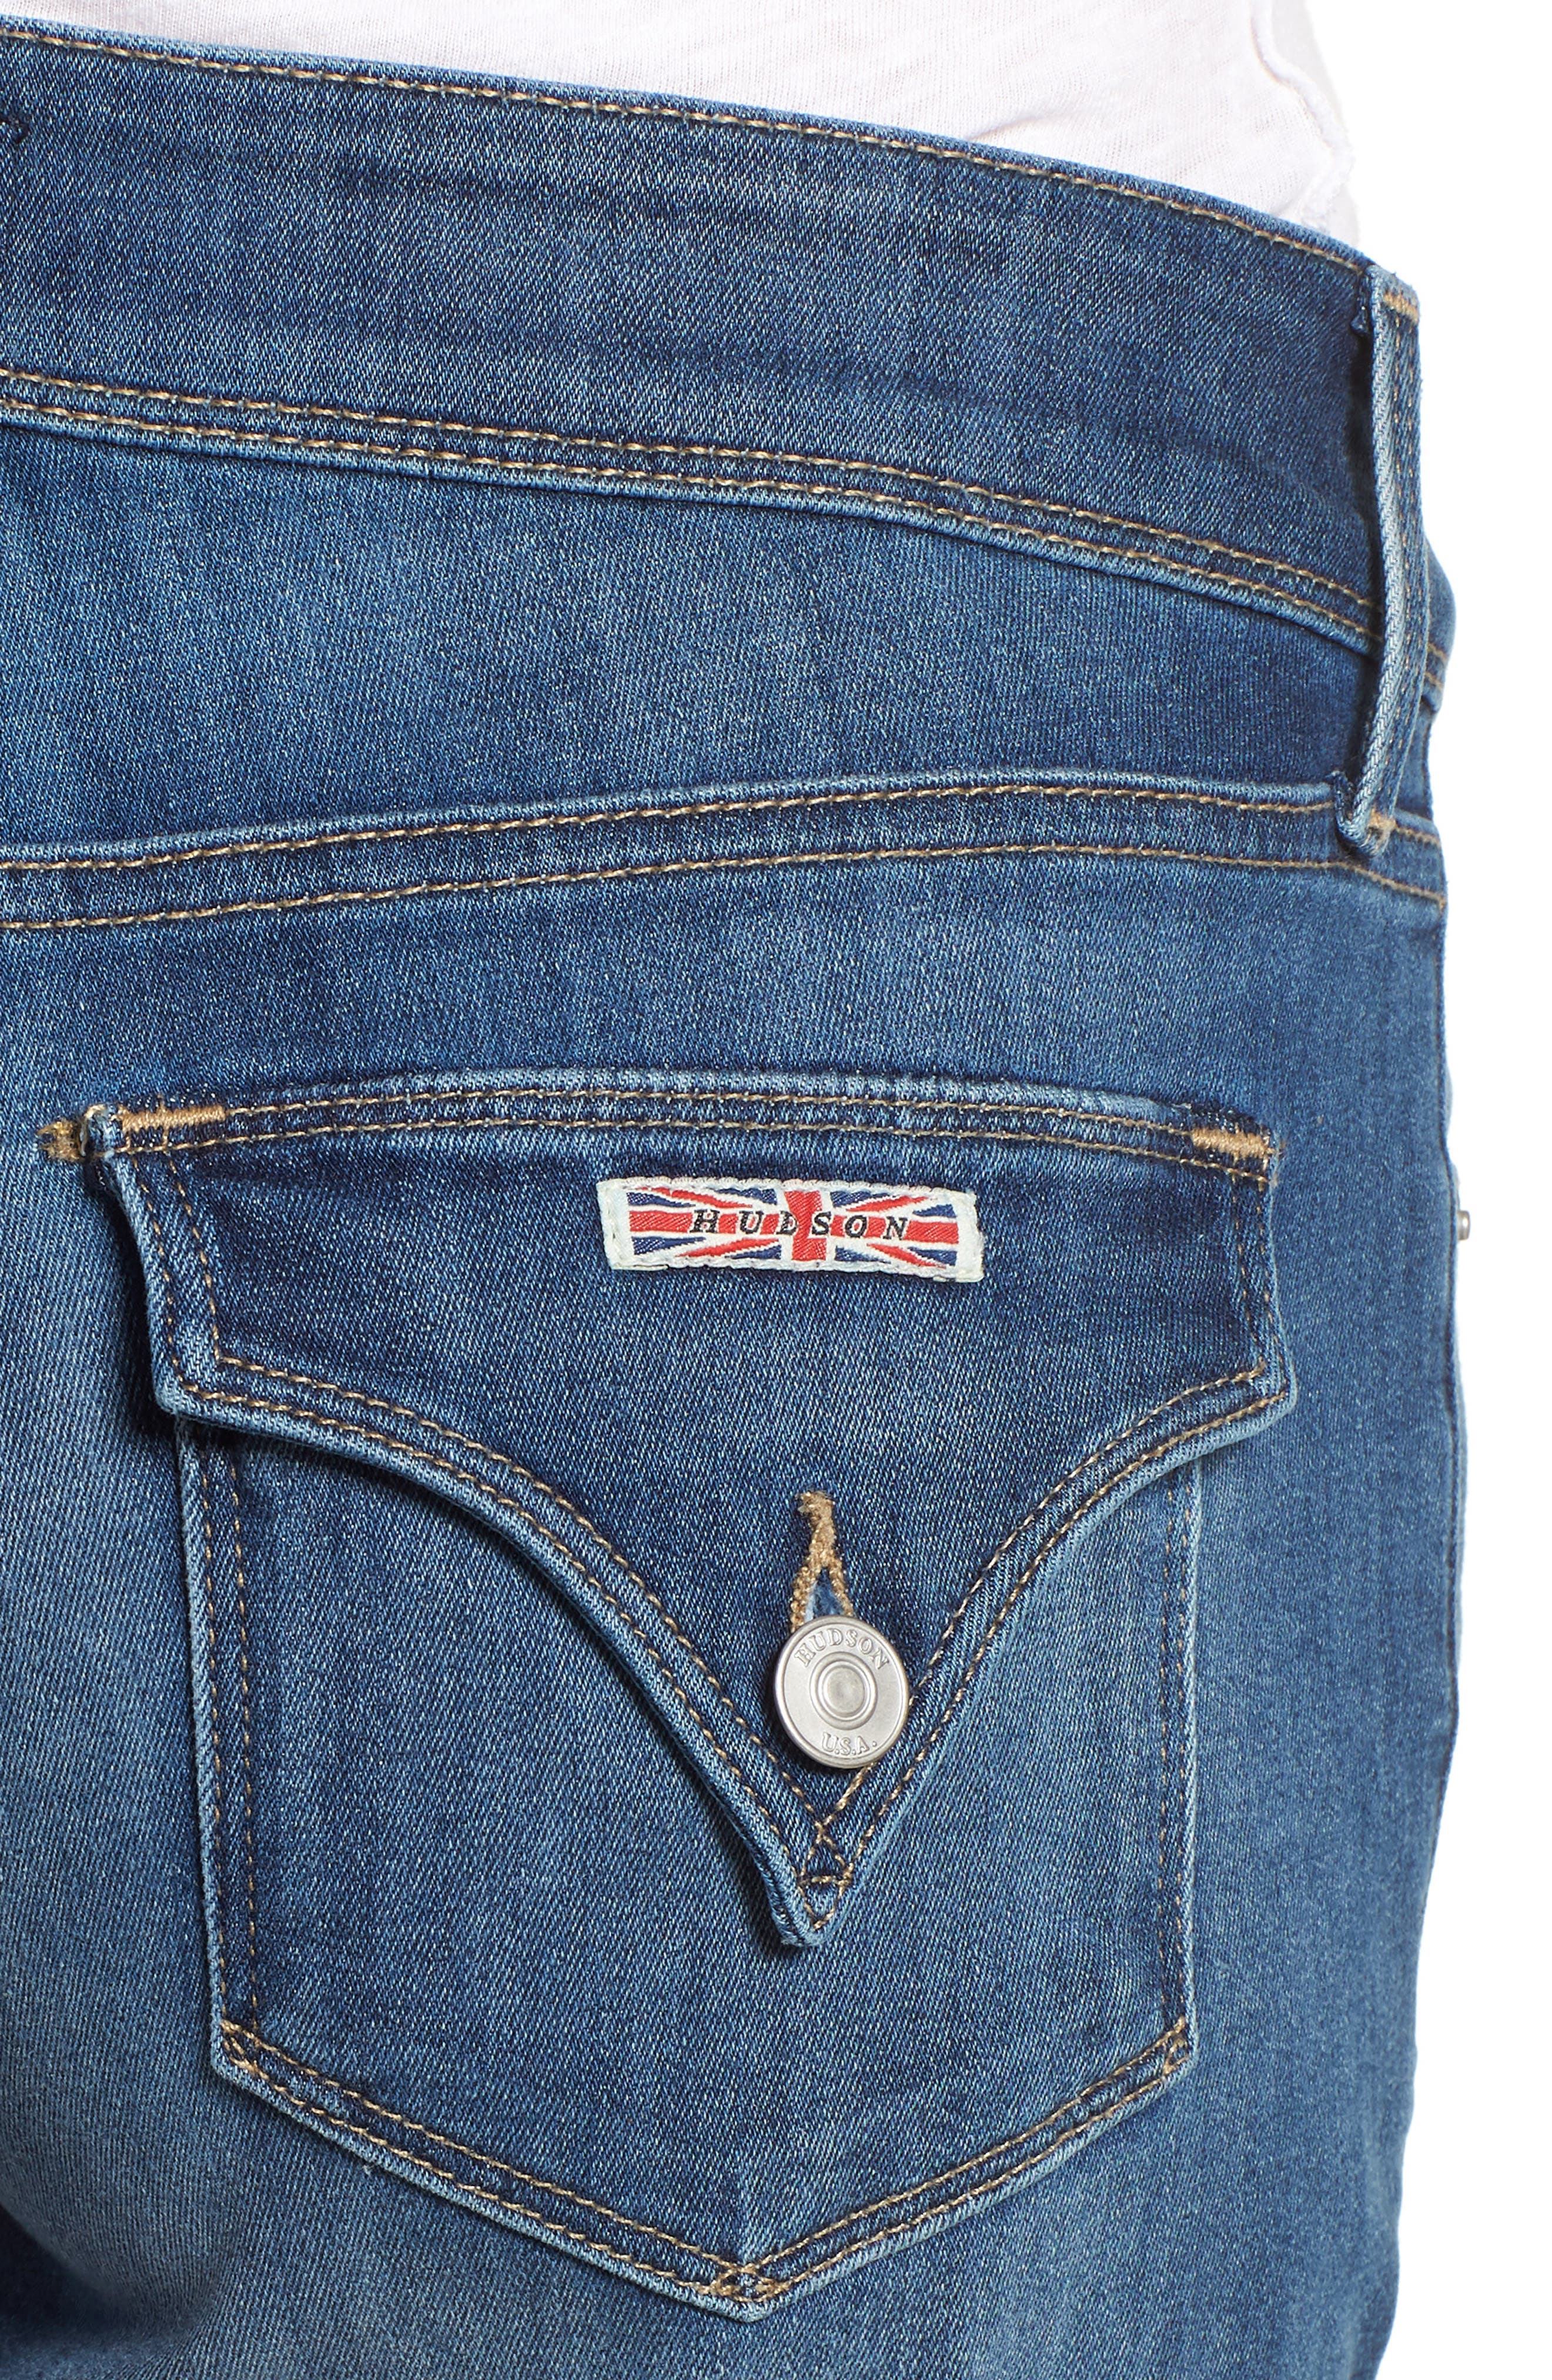 'Croxley' Cuffed Denim Shorts,                             Alternate thumbnail 20, color,